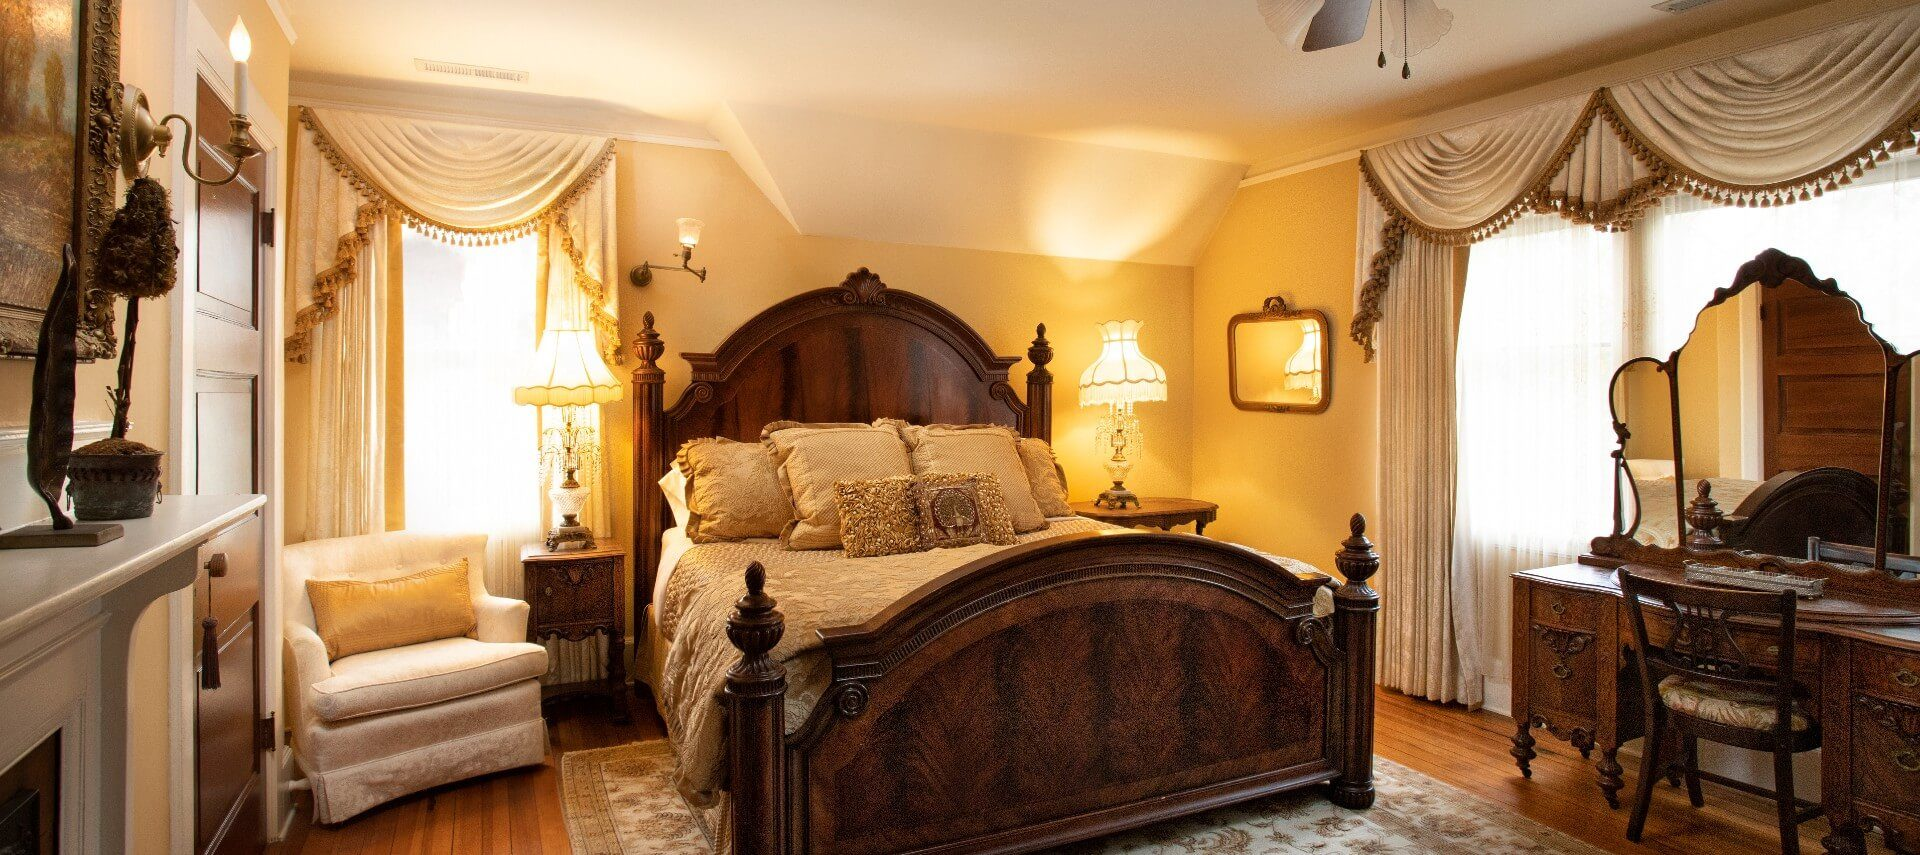 A spacious bedroom in shades of ivory and gold with a plush, king-size bed